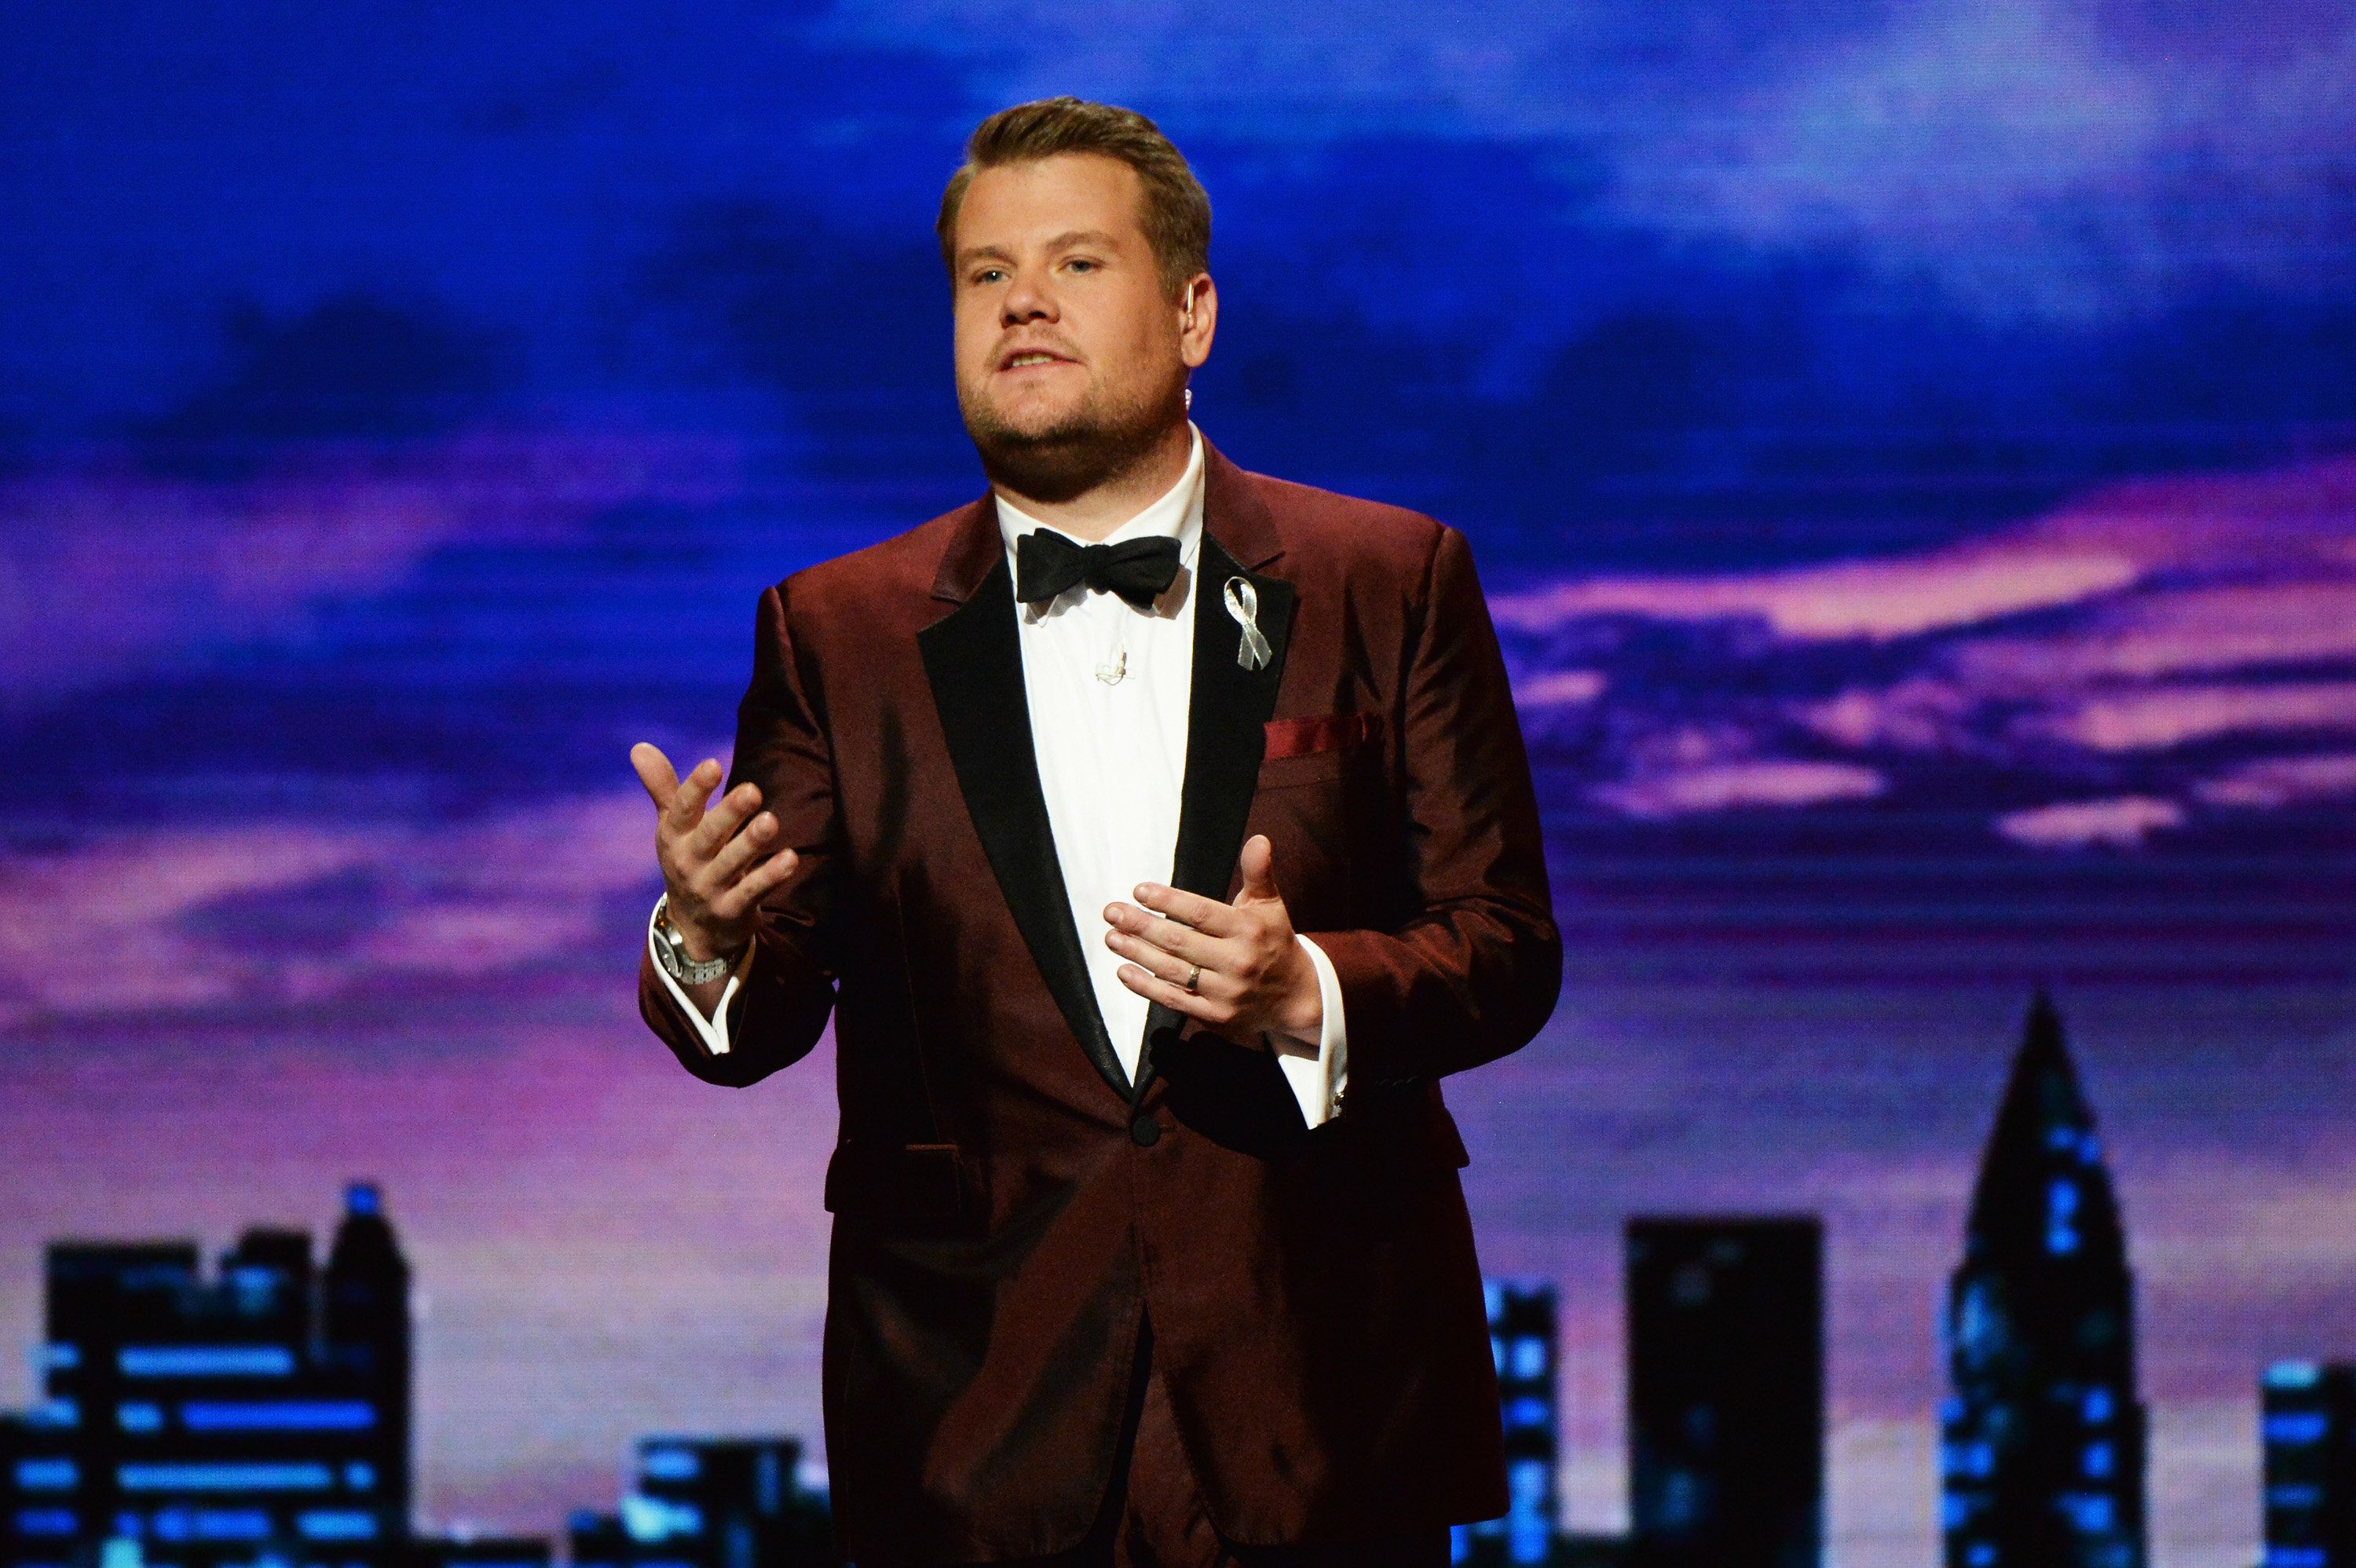 James Corden at the